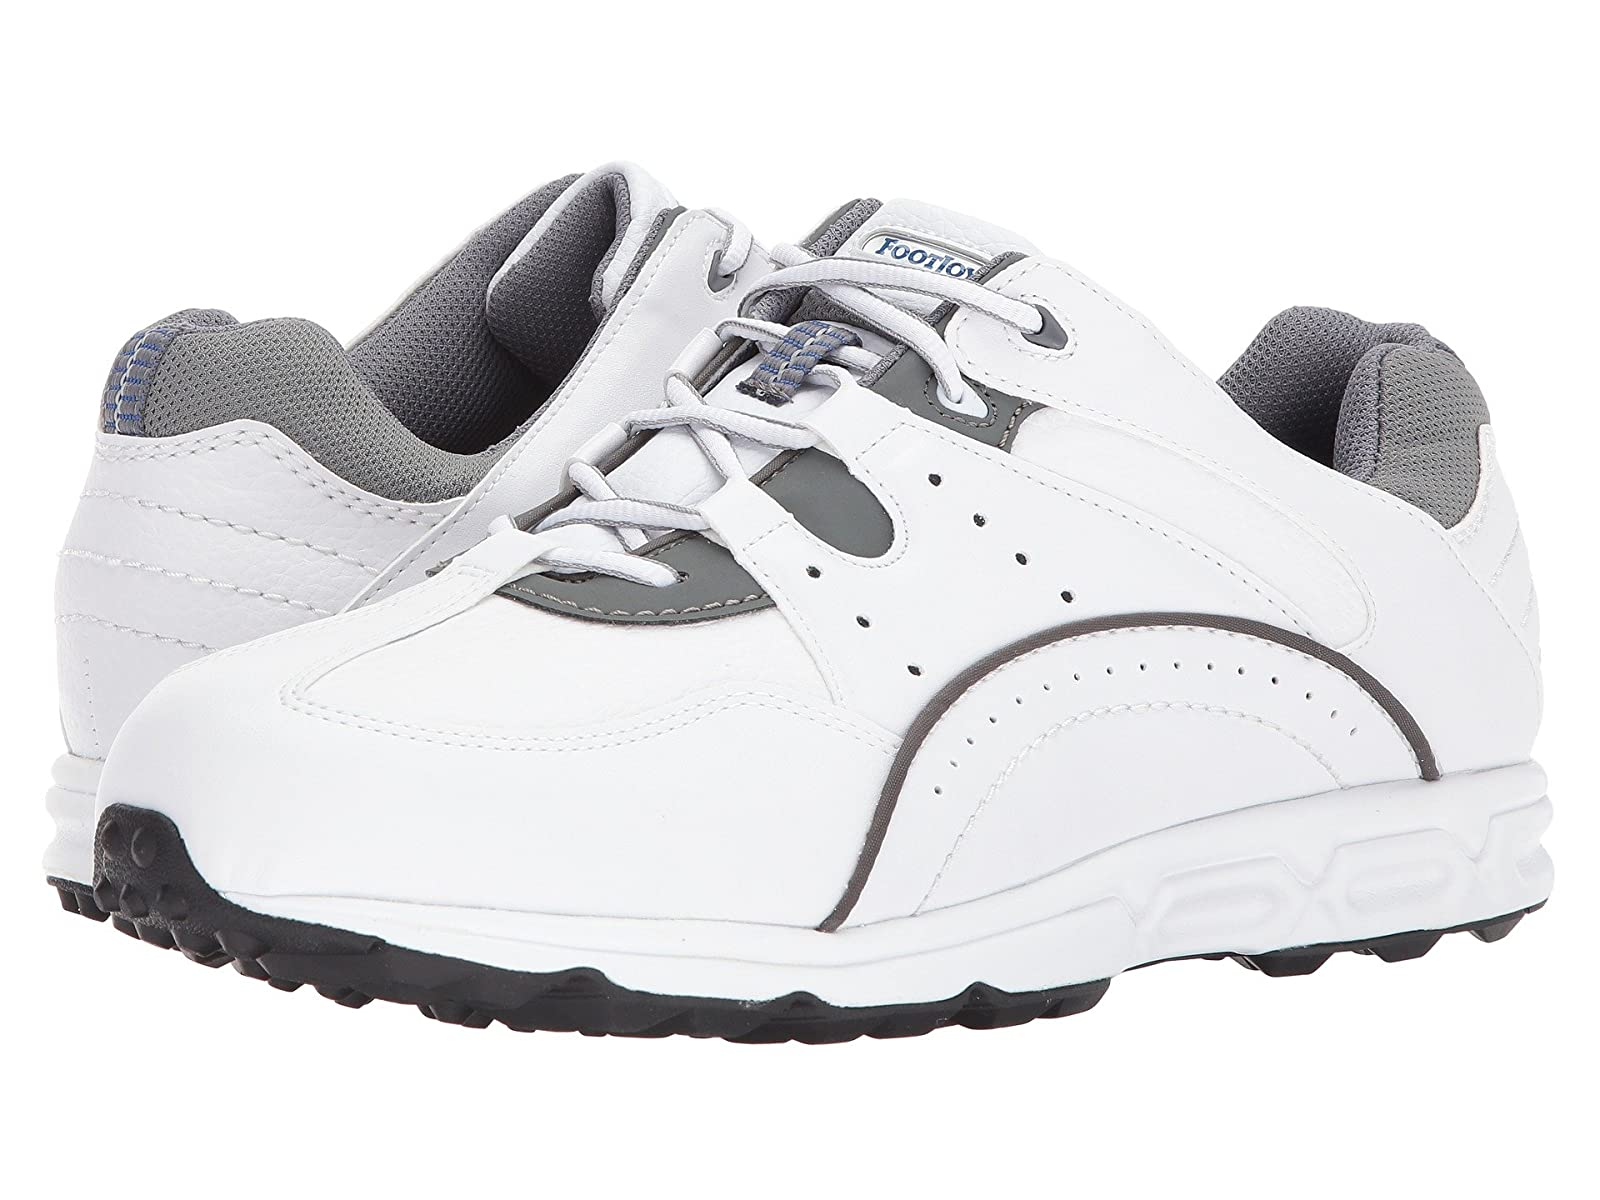 FootJoy Golf Specialty Spikeless AthleticAtmospheric grades have affordable shoes